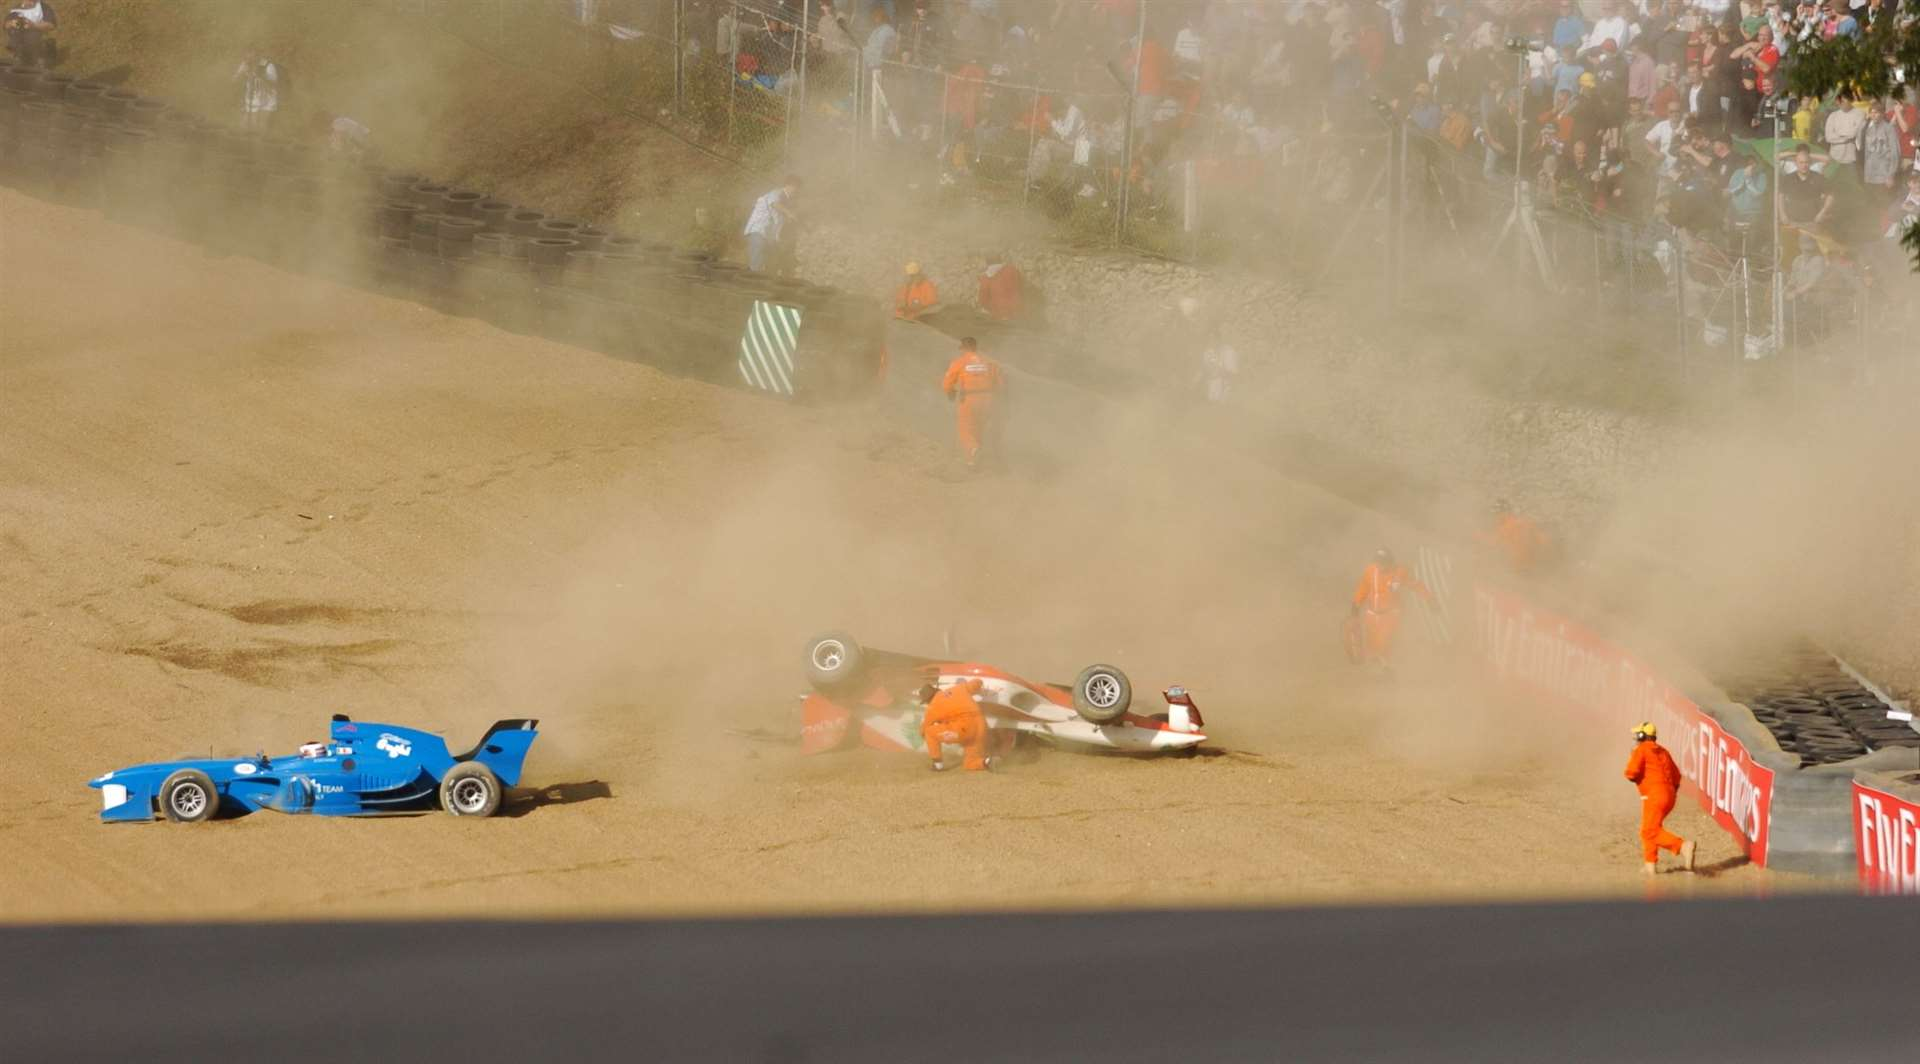 The crash involved Italy's Enrico Toccacelo and Lebanese driver Khalil Beschir. Picture: Barry Goodwin